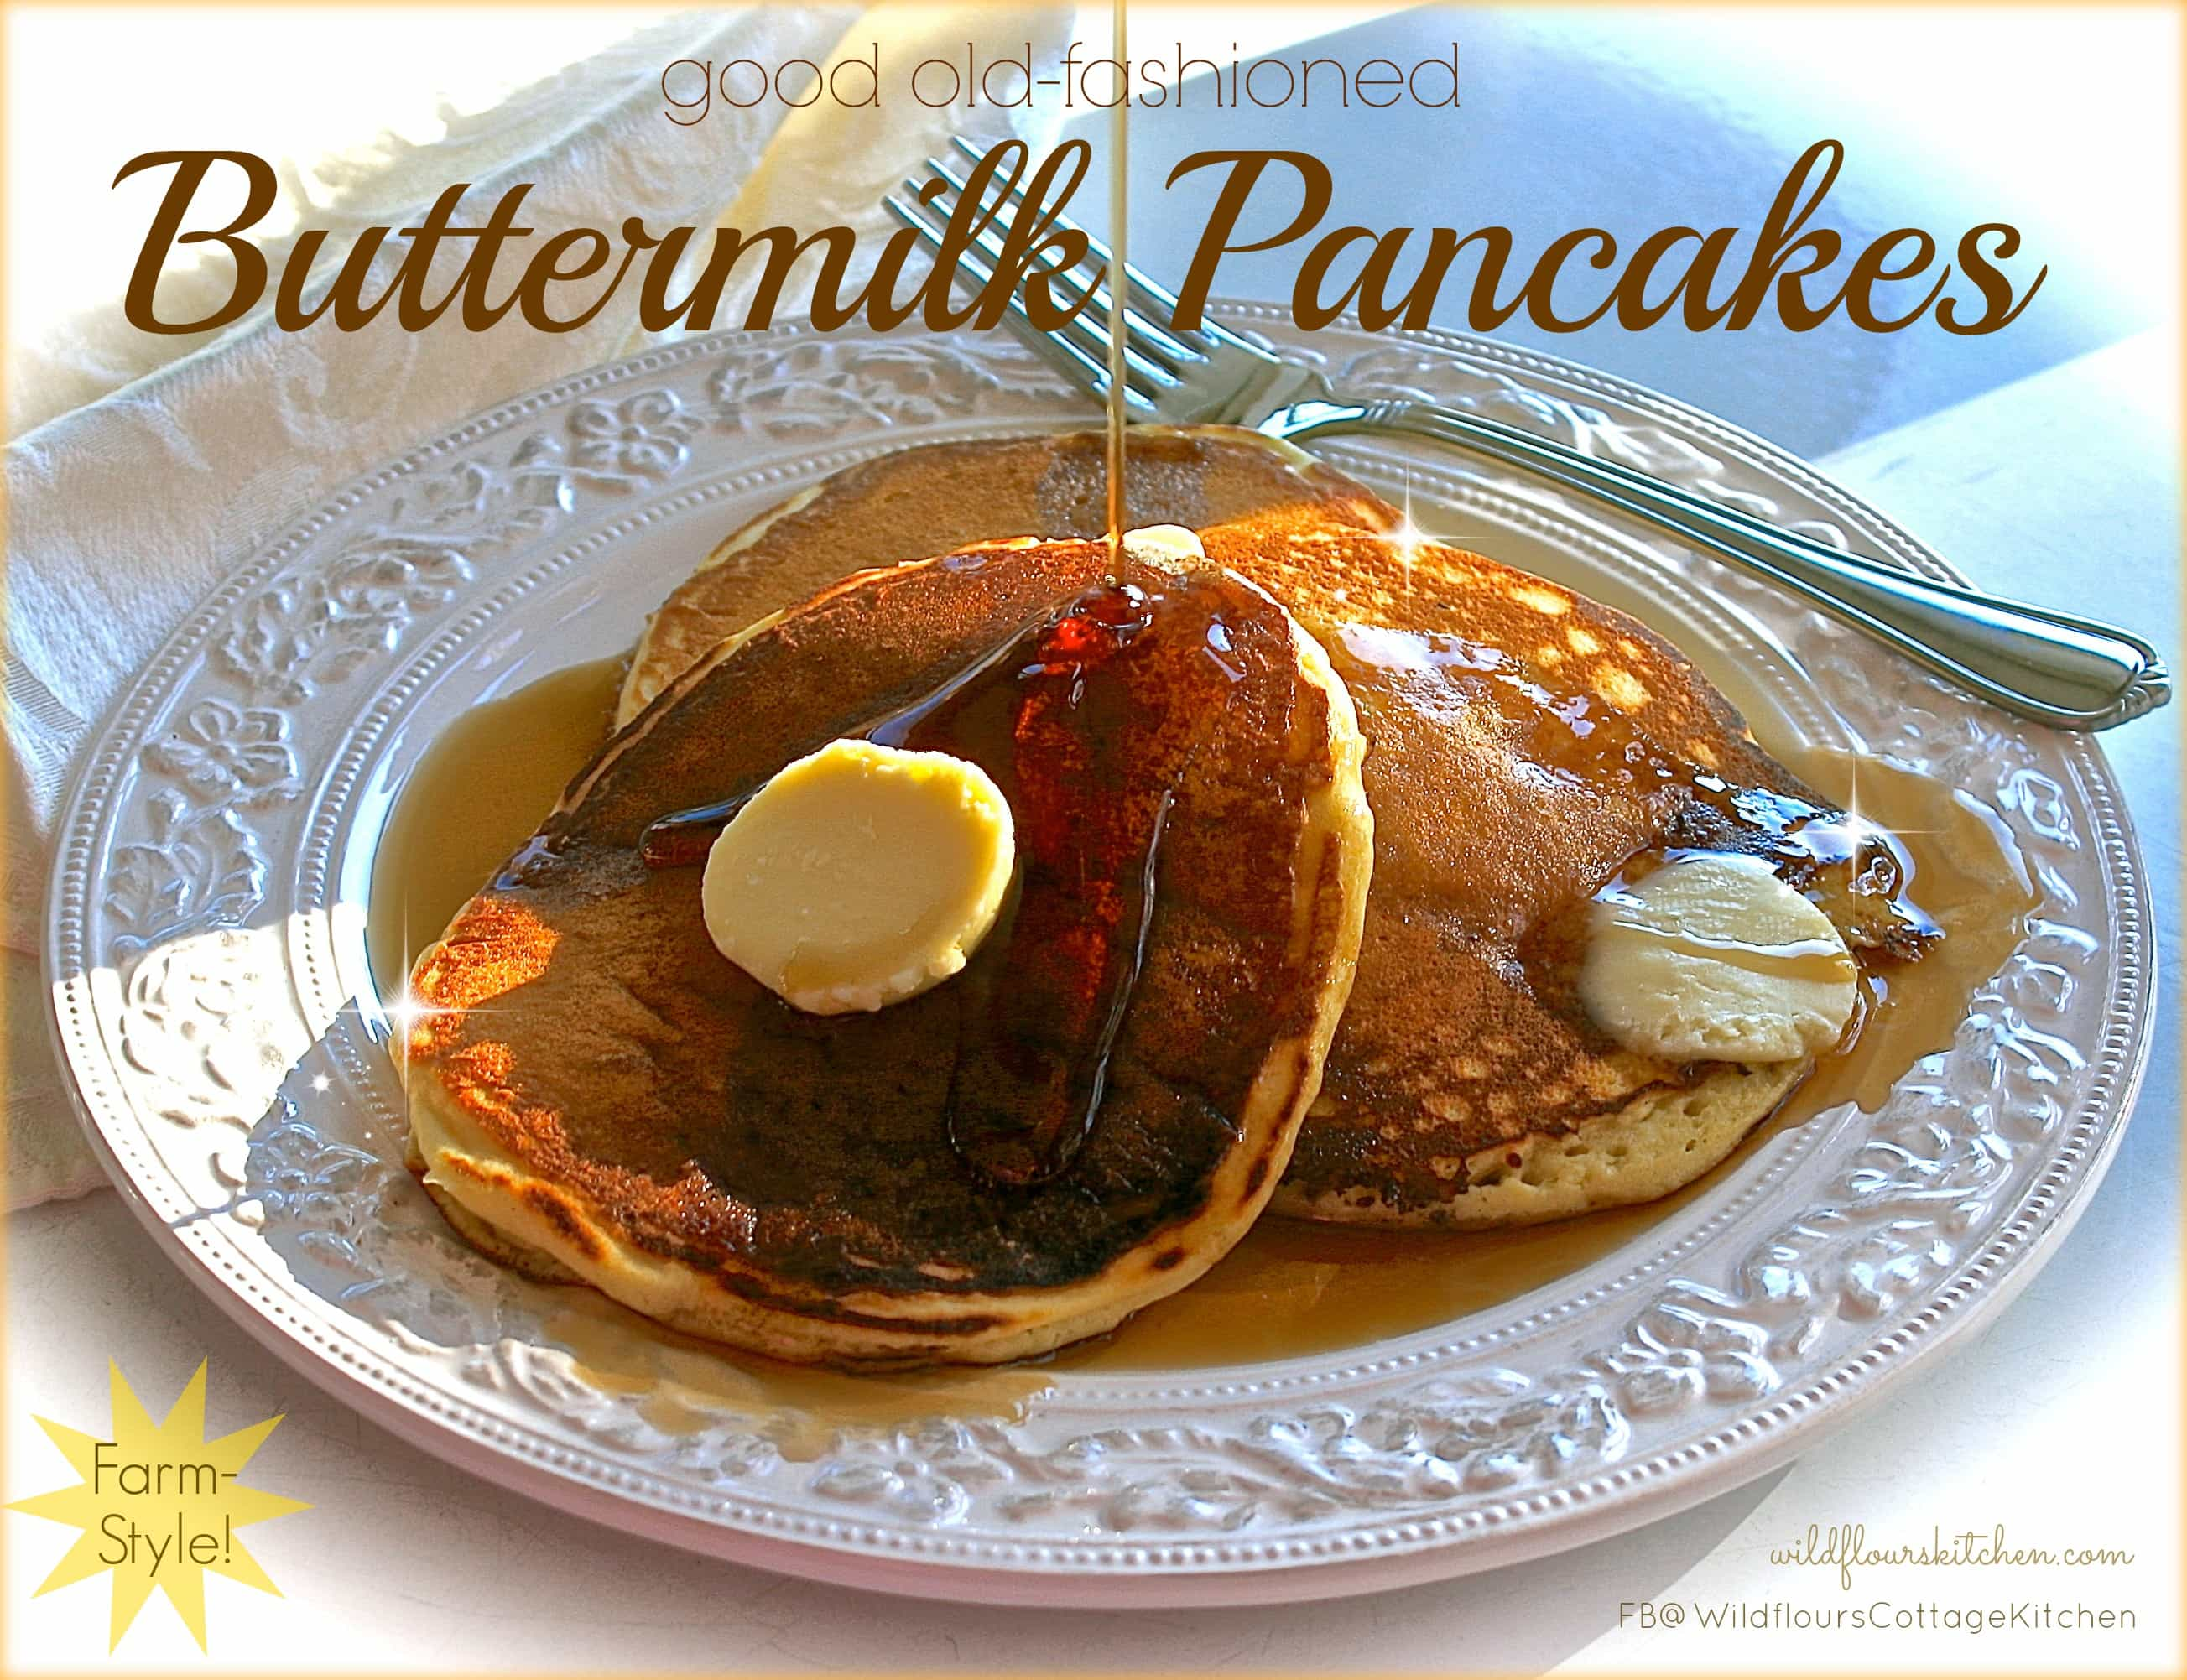 Good Old-Fashioned Buttermilk Pancakes